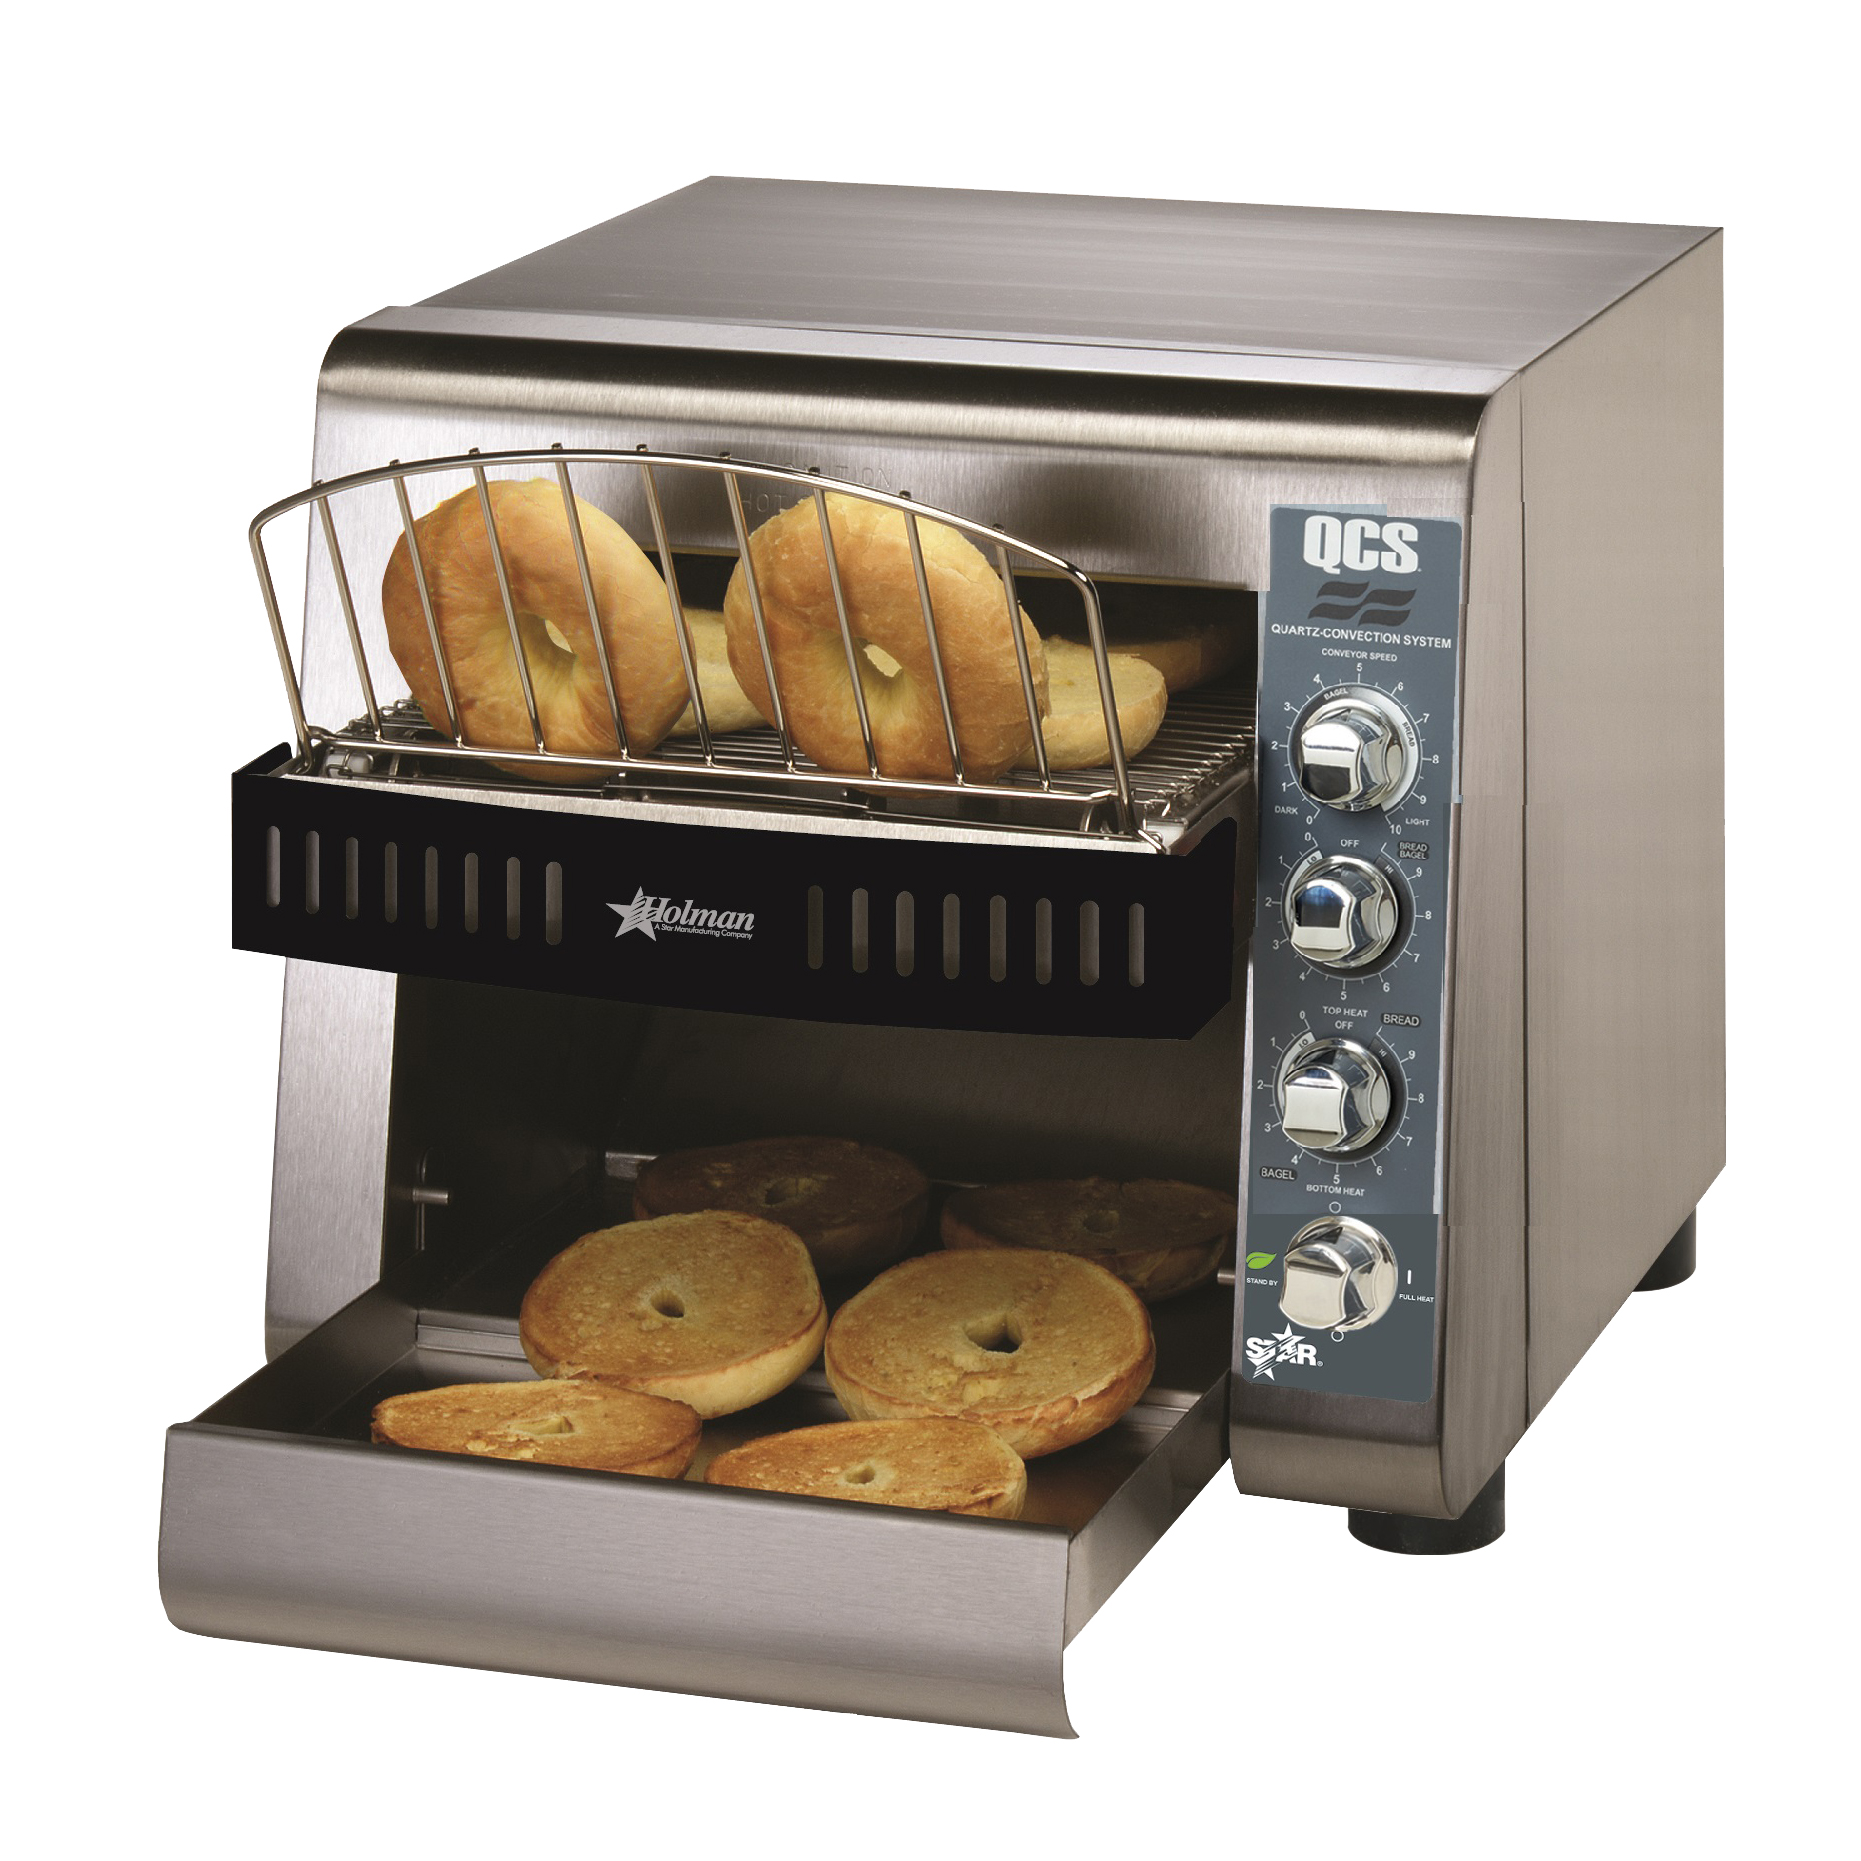 Star QCS2-1200B toaster, conveyor type